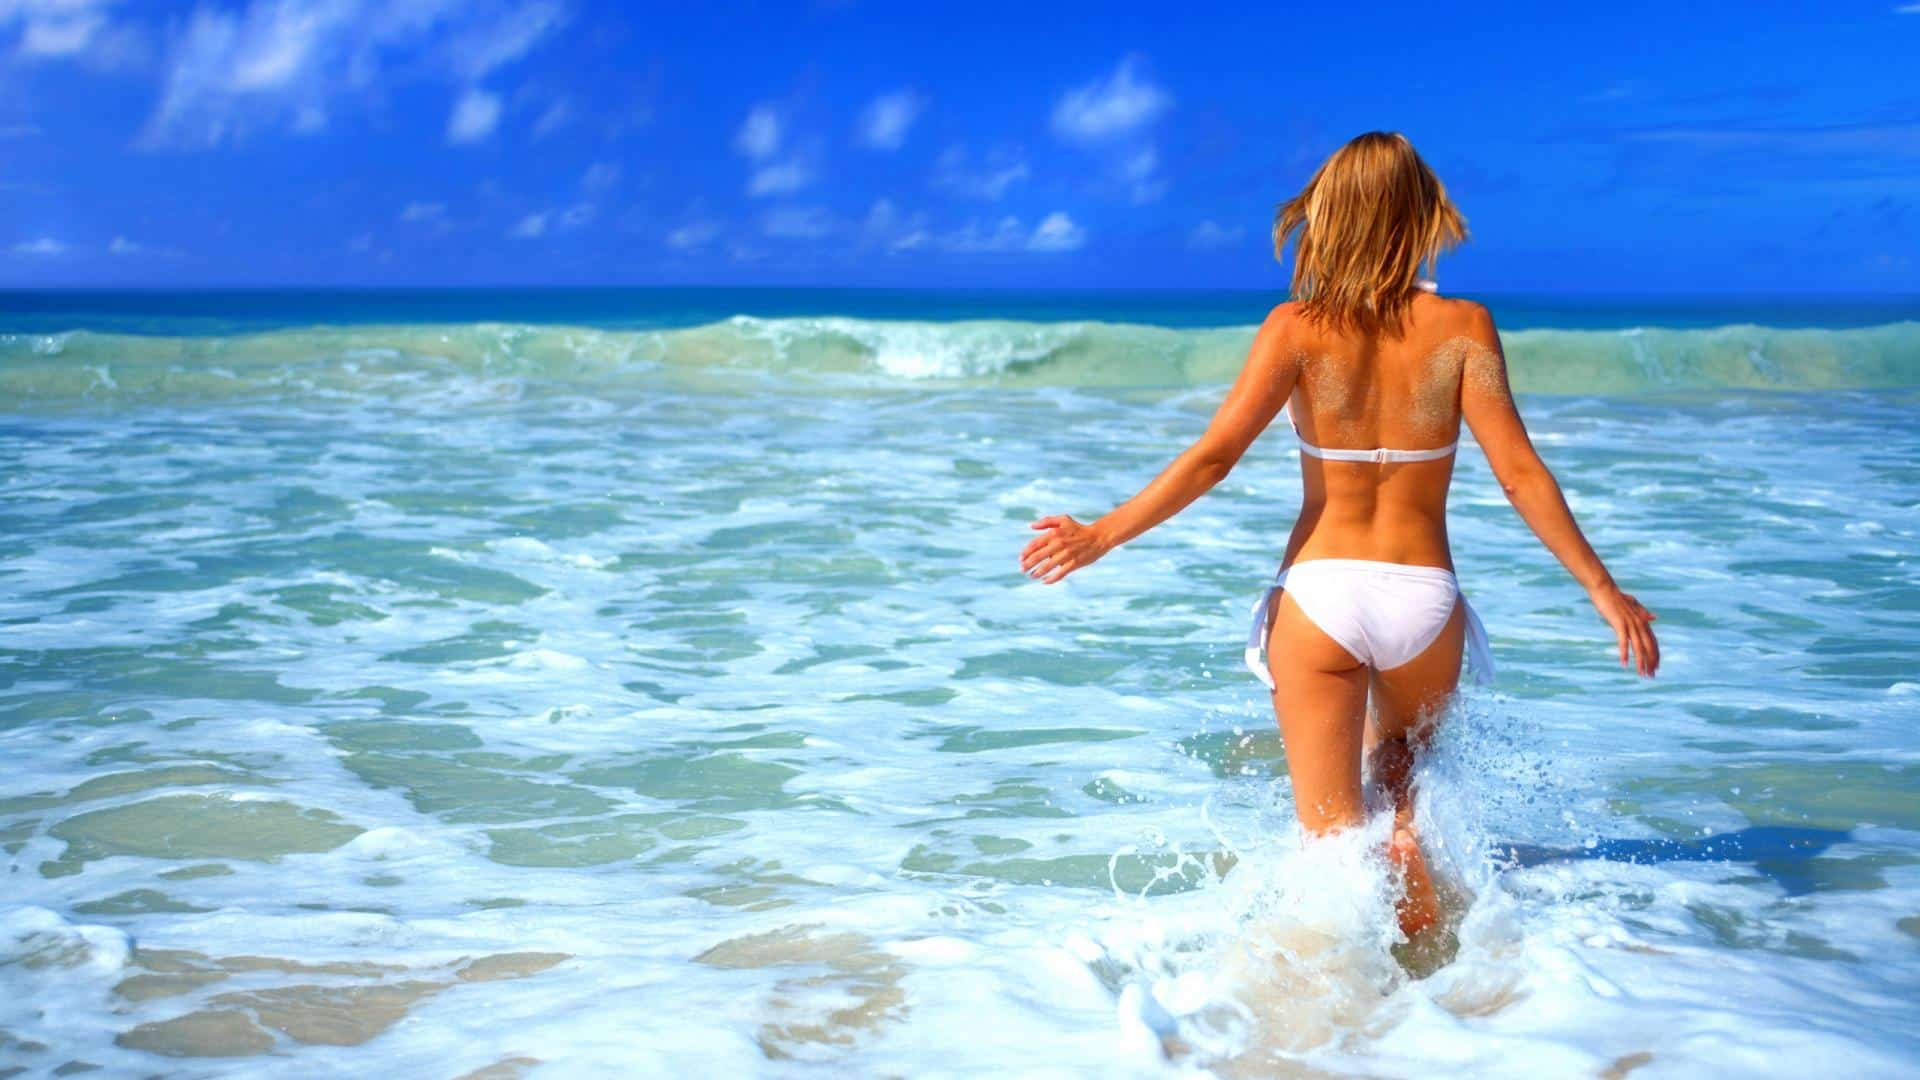 bikini_wear_sea_run